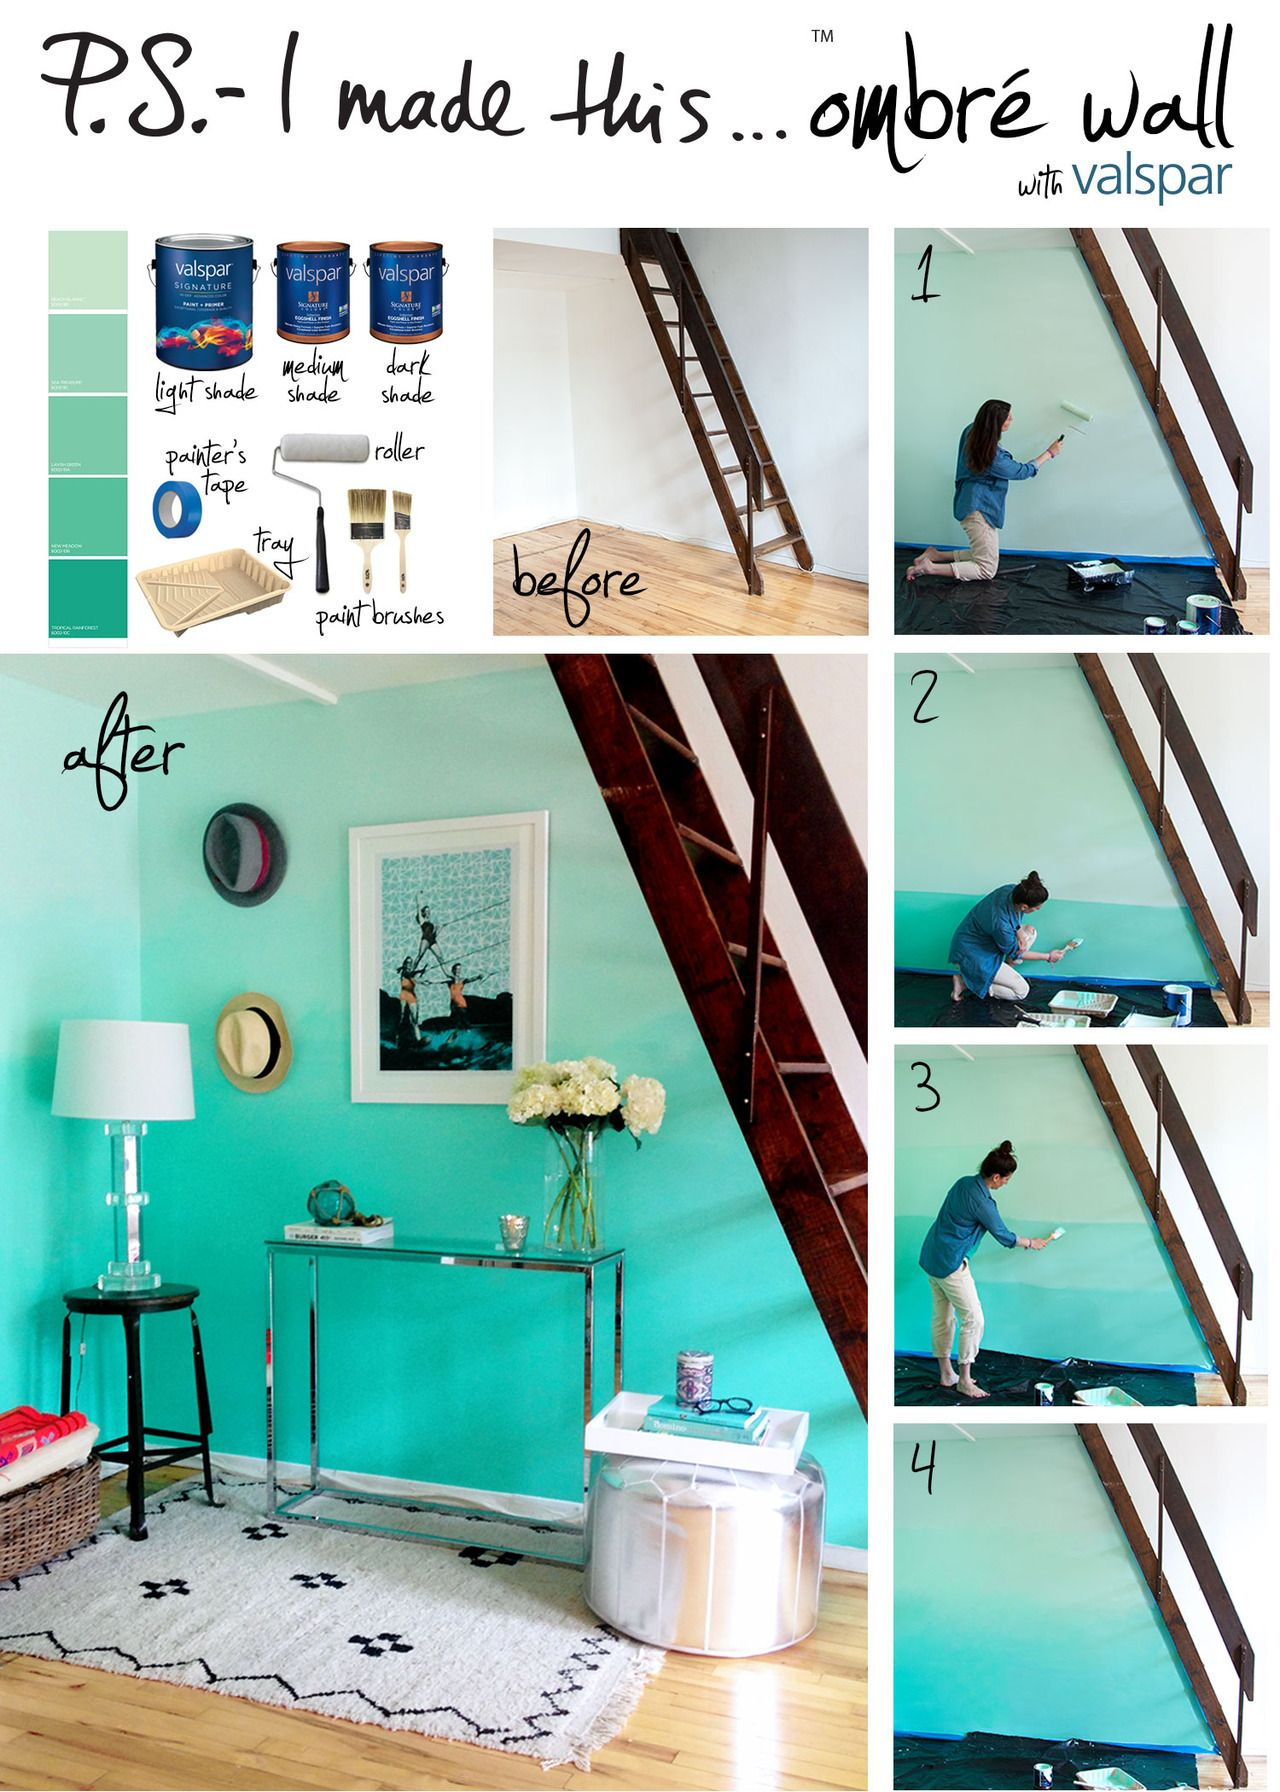 Ombre wall diy psimadethis do it yourself pinterest hogar ombre wall diy psimadethis solutioingenieria Images